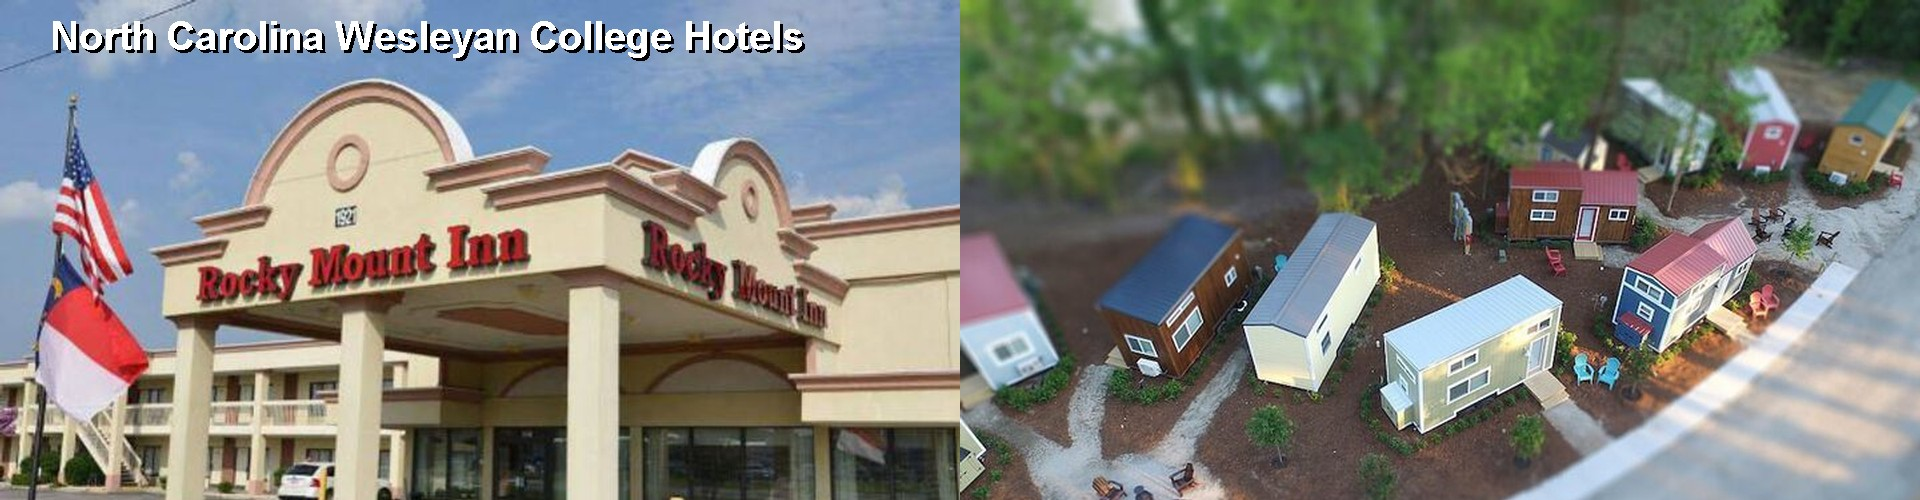 5 Best Hotels near North Carolina Wesleyan College